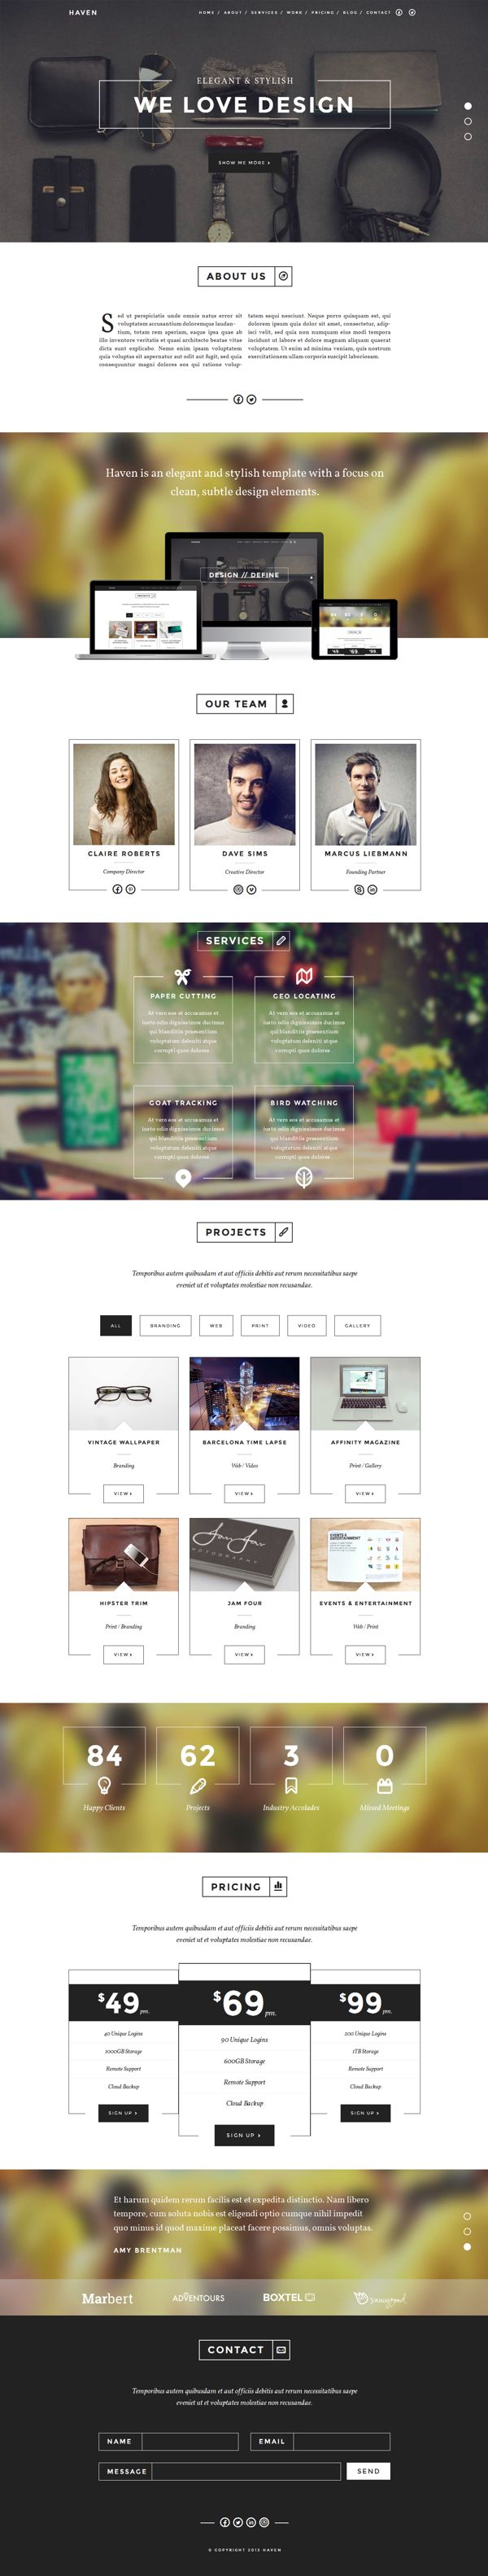 Elegant & Stylish OnePage Theme by WordPress Design Awards, via Behance